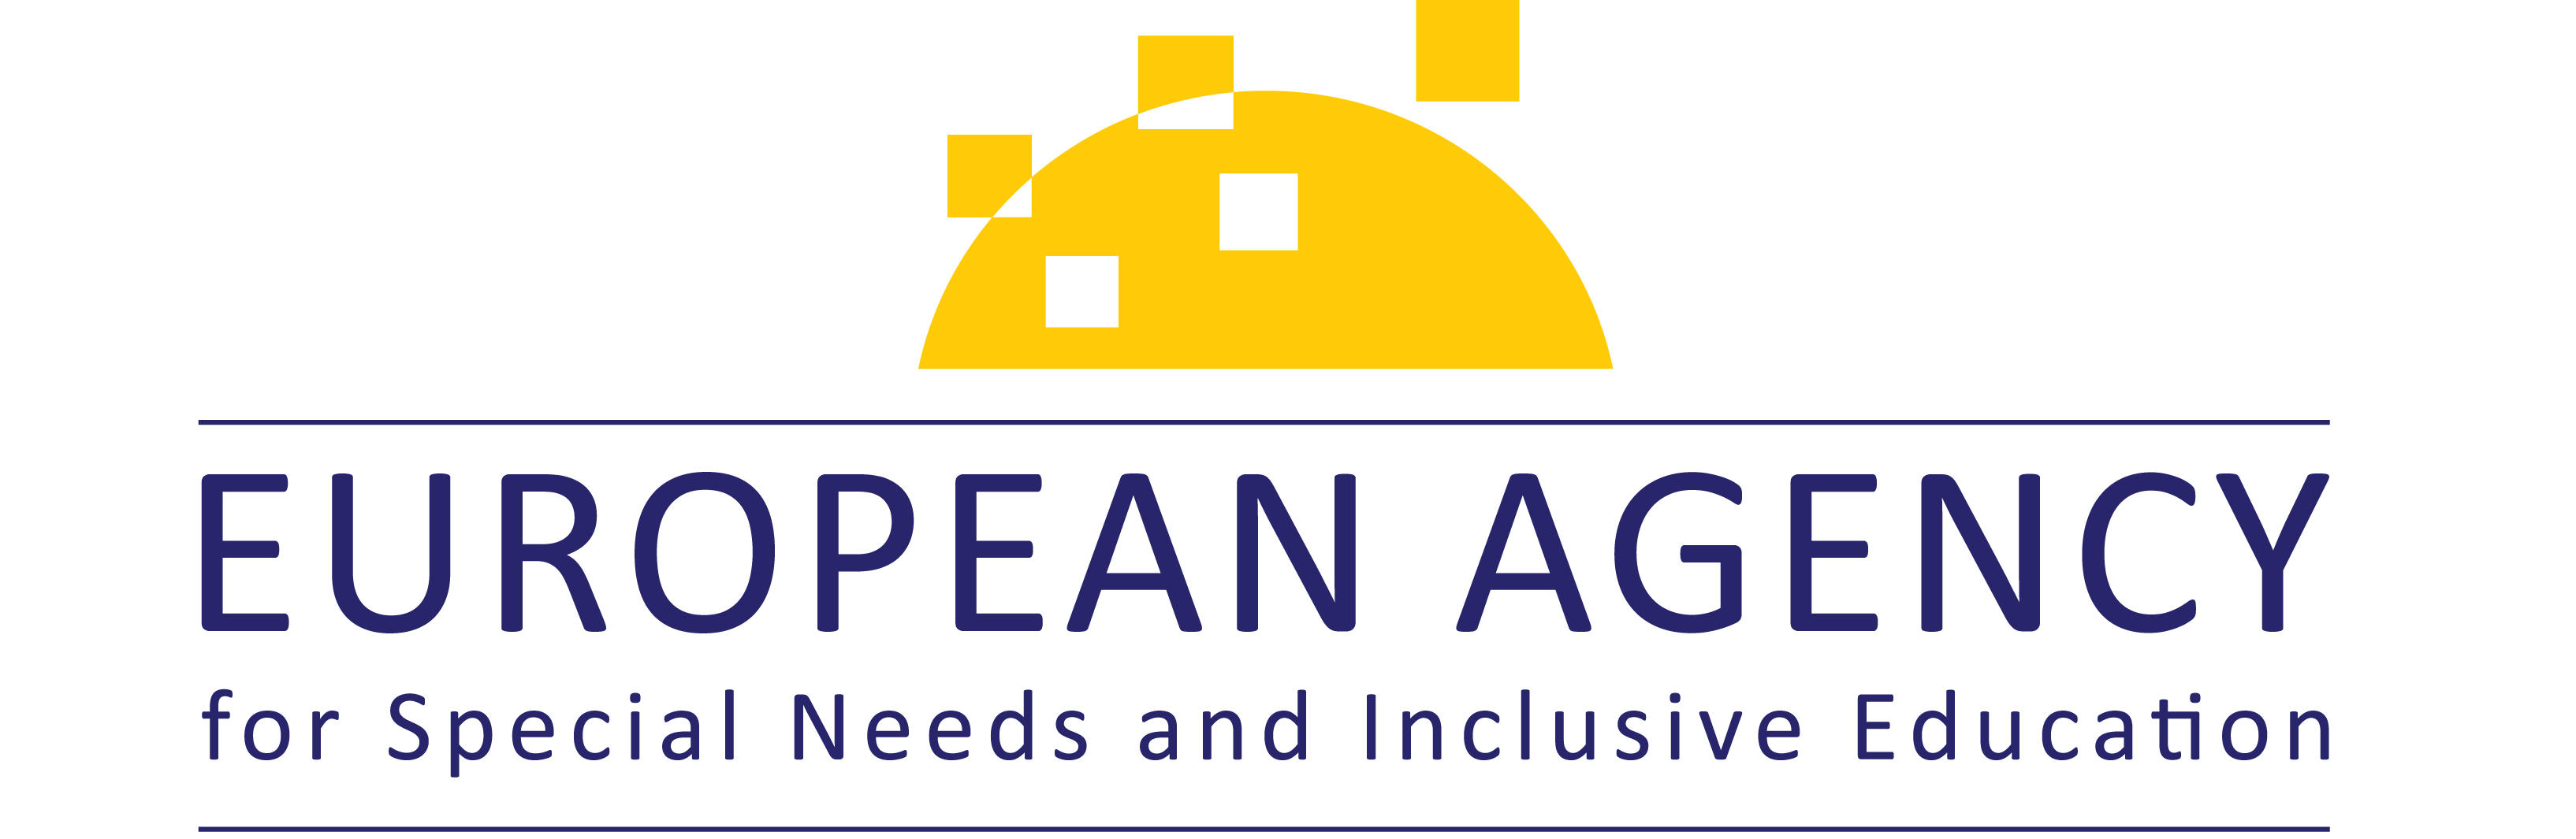 logo of the European Agency for Special Needs and Inclusive Education